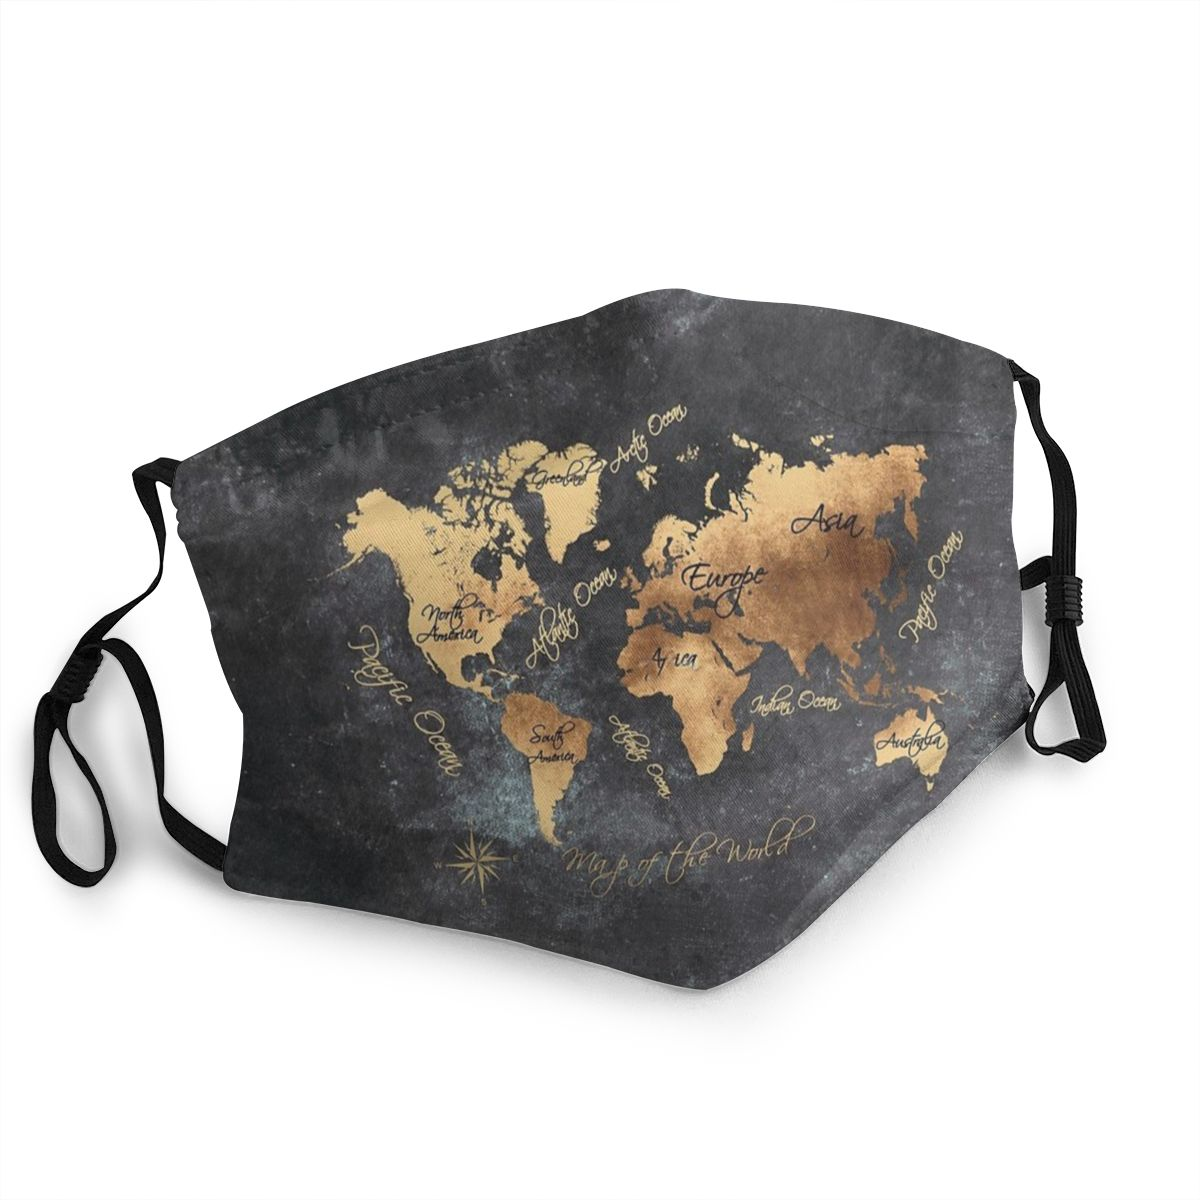 World Map Non-Disposable Face Mask Anti Bacterial Dustproof Protection Cover Respirator